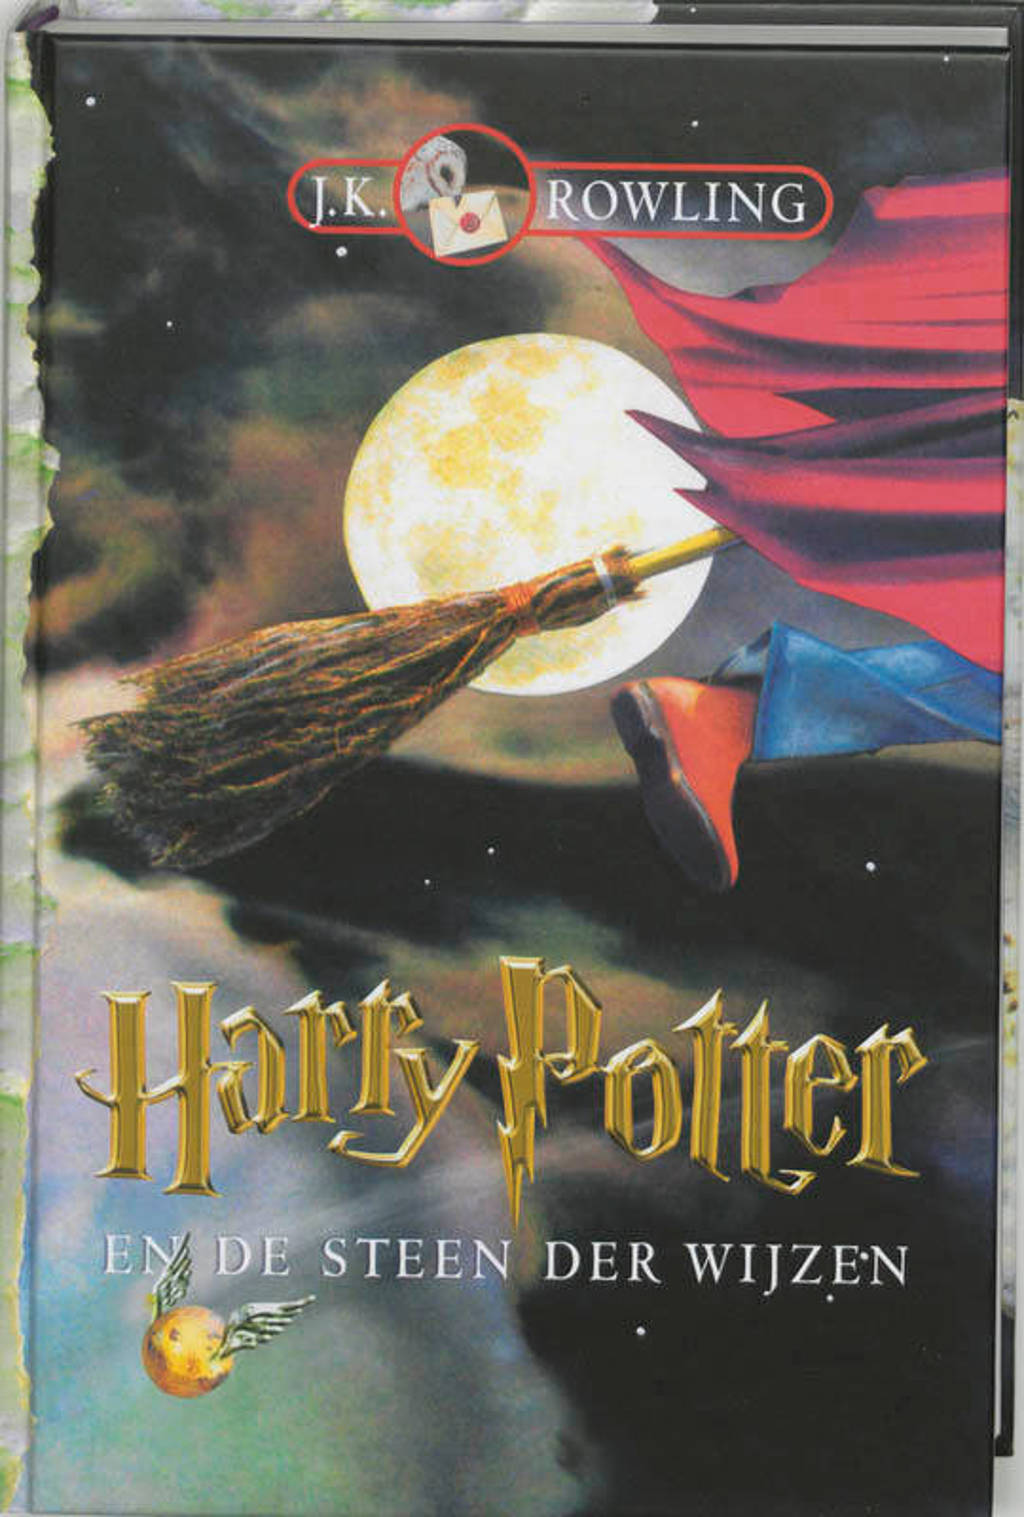 Harry Potter: Harry Potter en de steen der wijzen - J.K. Rowling